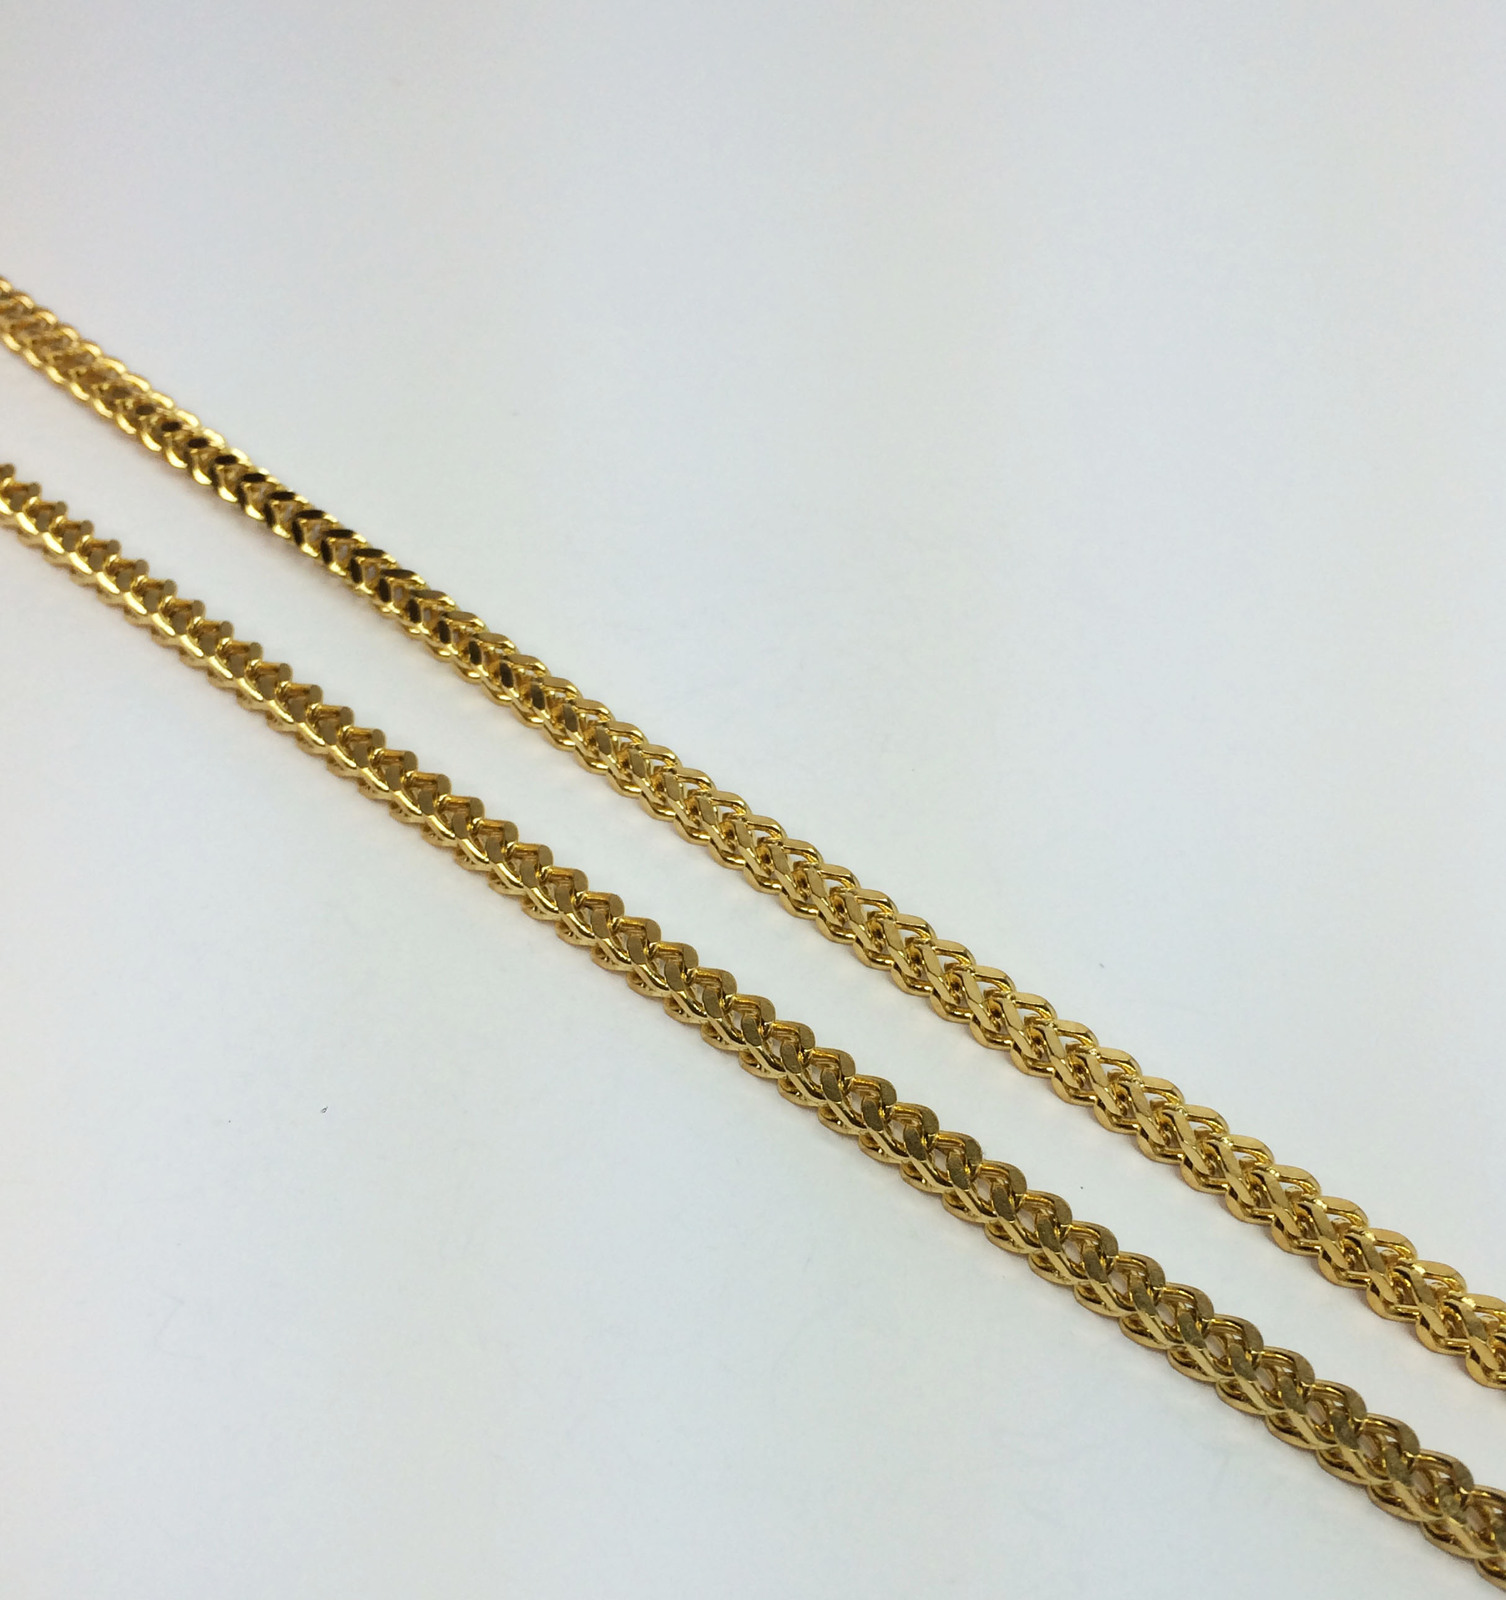 18K Gold Plated Stainless Steel  Franco Chain Necklace 30 Inches